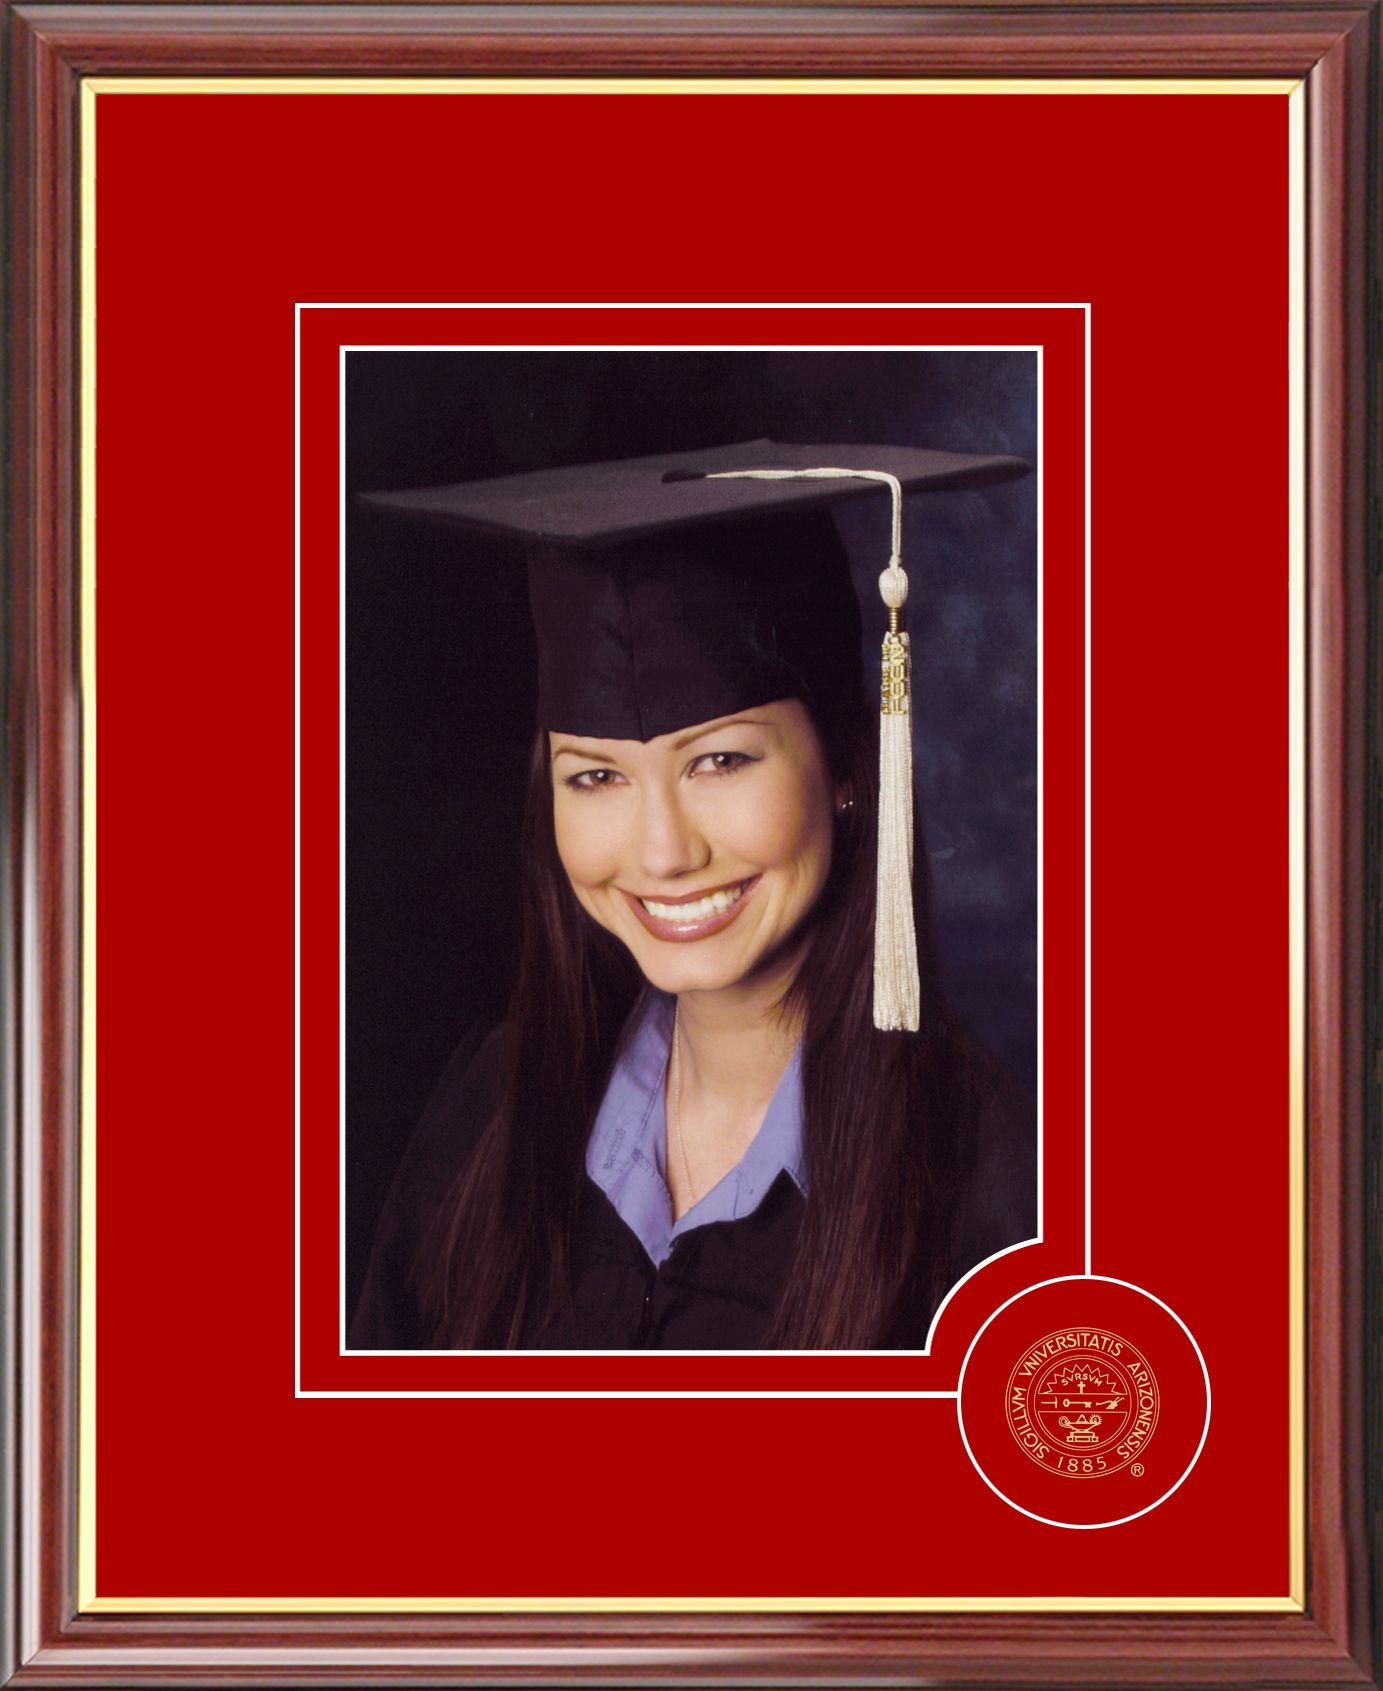 University of Arizona 5X7 Graduate Portrait Frame